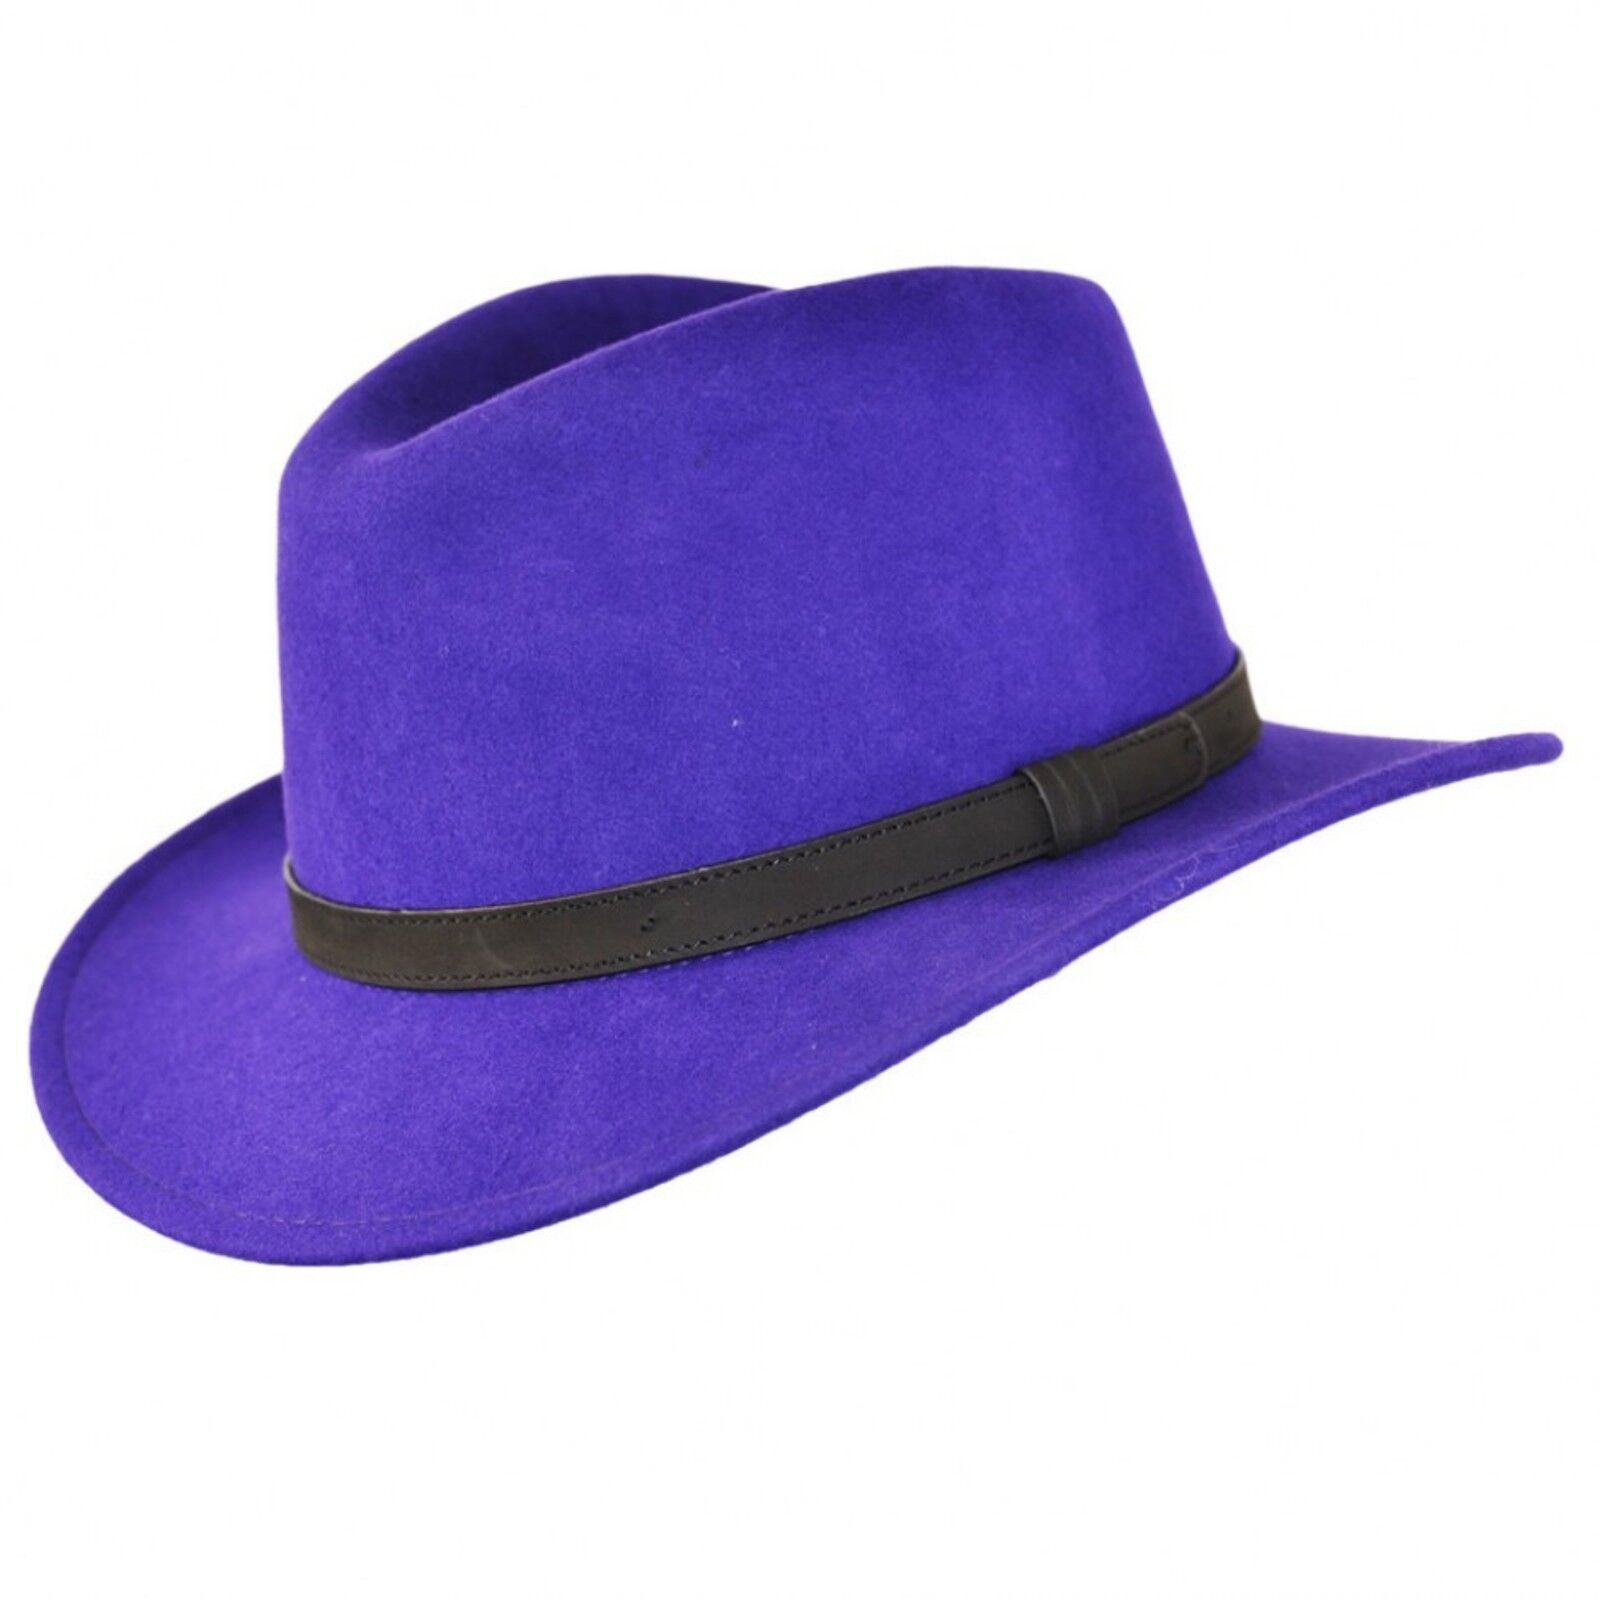 Gents Crushable Purple 100% Wool Felt Fedora Trilby Hat With Leather Type  Band. 2fa66fc6ce8